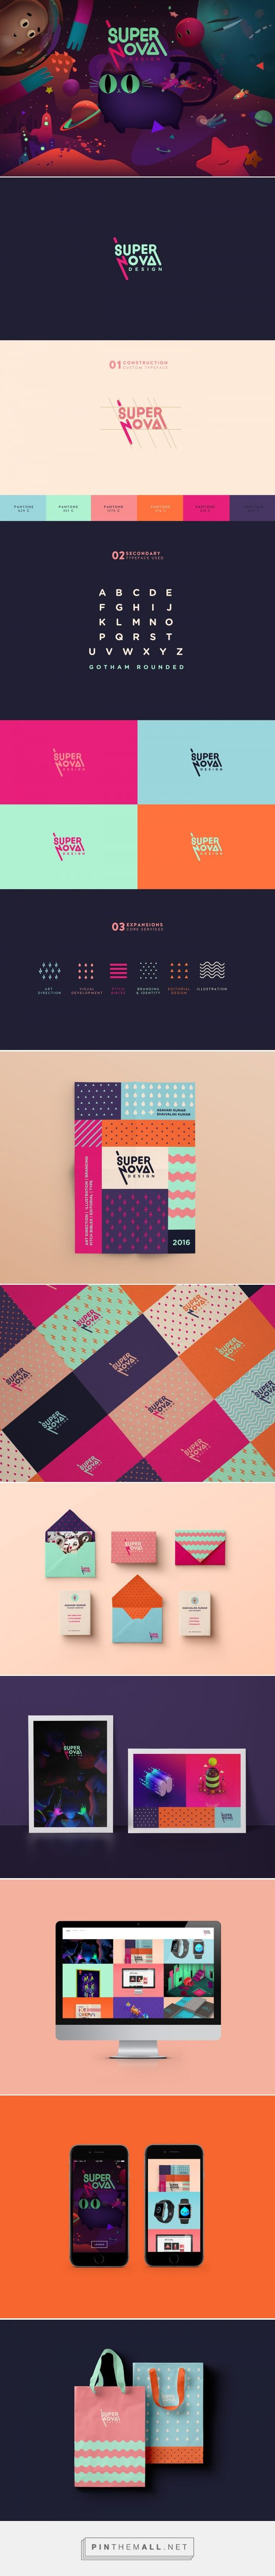 Supernova Design Branding on Behance | Fivestar Branding – Design and Branding Agency & Inspiration Gallery #fitness_logo_retro